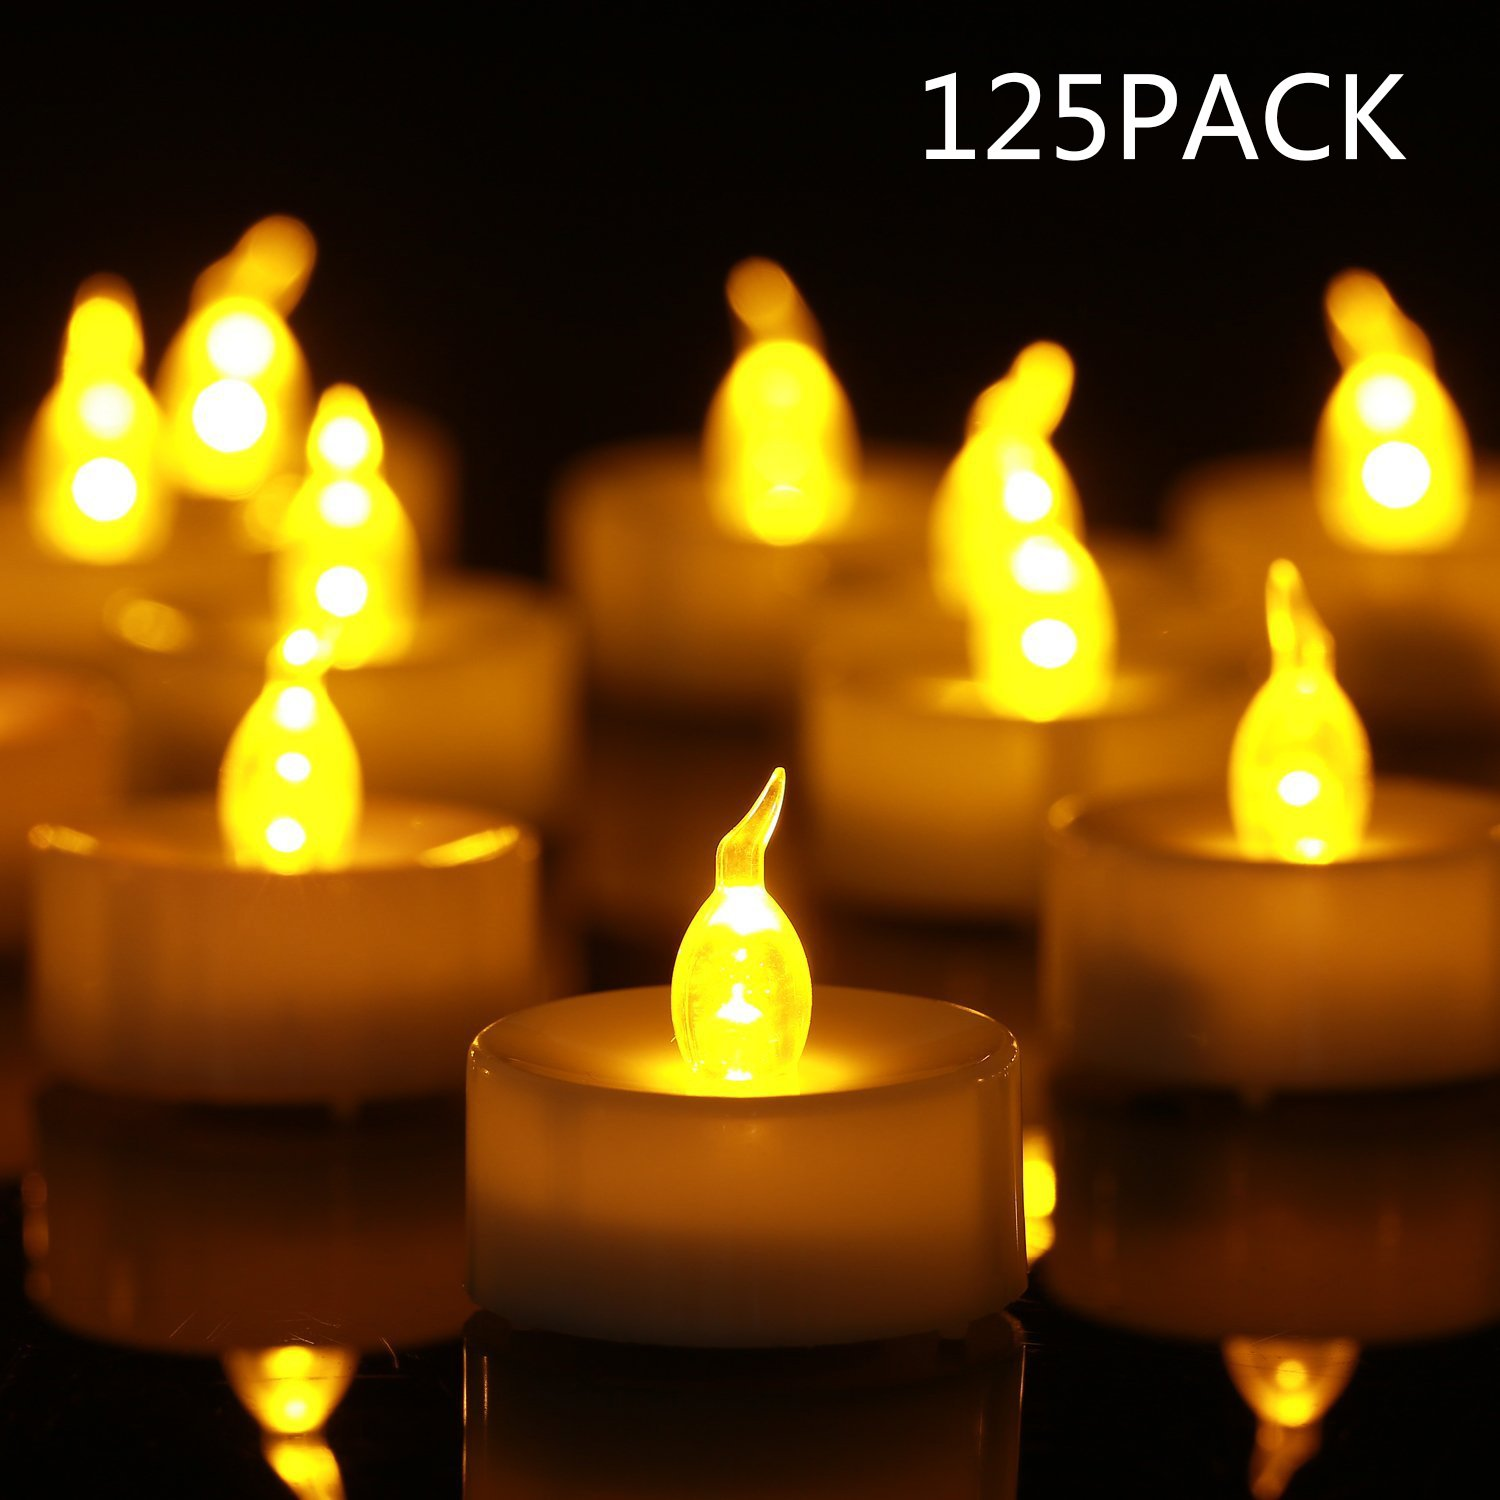 Tea Light Flameless LED Tea Lights Candles (125 Pack,$0.223/Count), Flickering Warm Yellow 100+ Hours Battery-powered Tealight Candle. Ideal for Party, Wedding, Birthday, Gifts and Home Decoration by Wasin